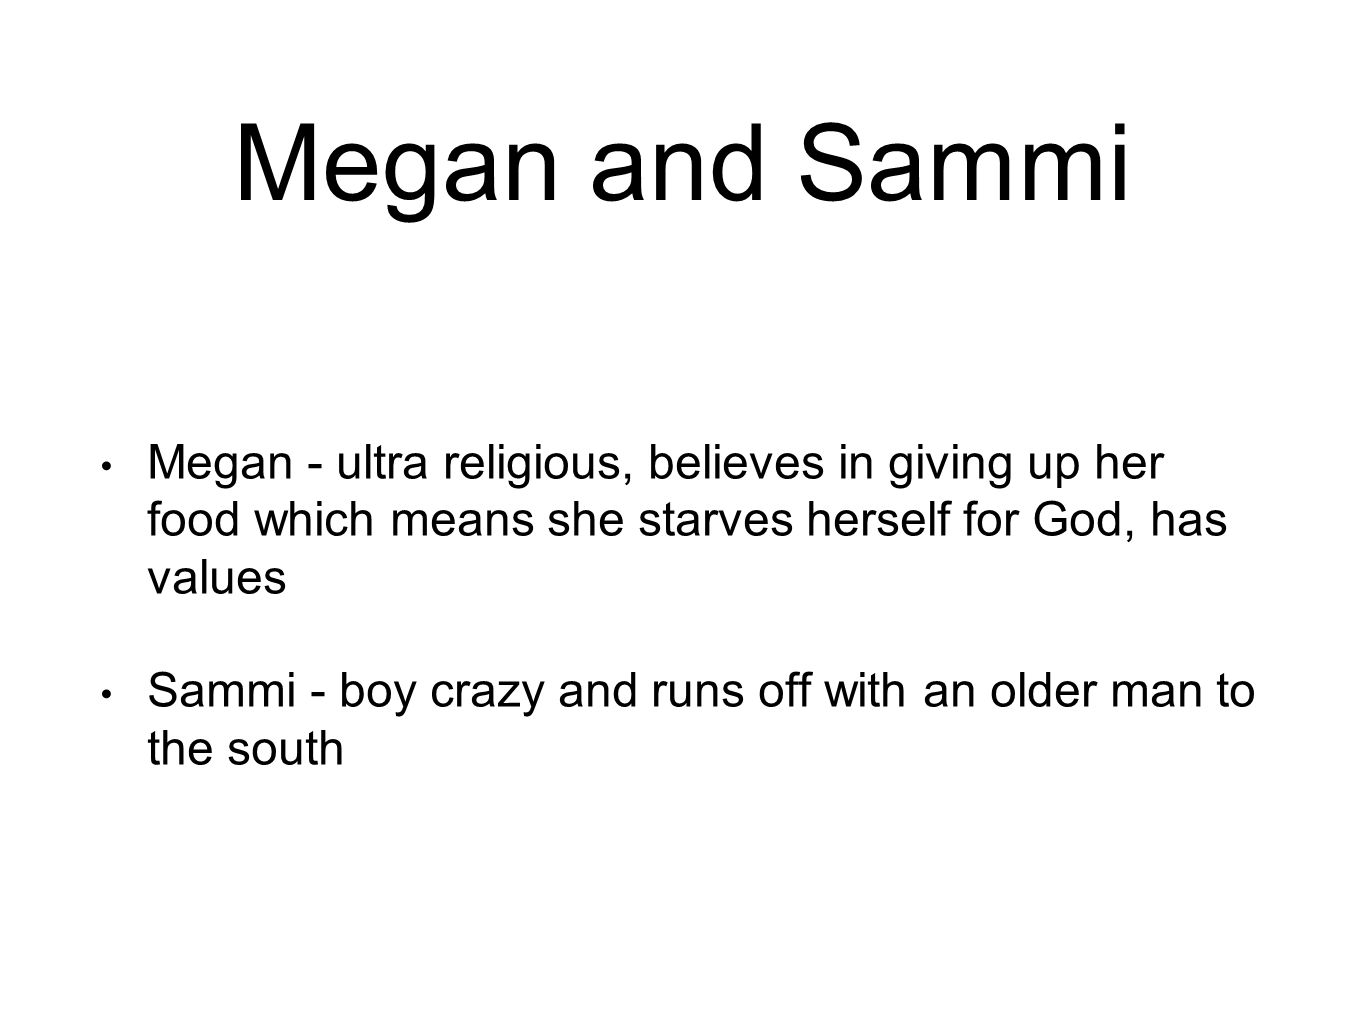 Megan and Sammi Megan - ultra religious, believes in giving up her food which means she starves herself for God, has values Sammi - boy crazy and runs off with an older man to the south